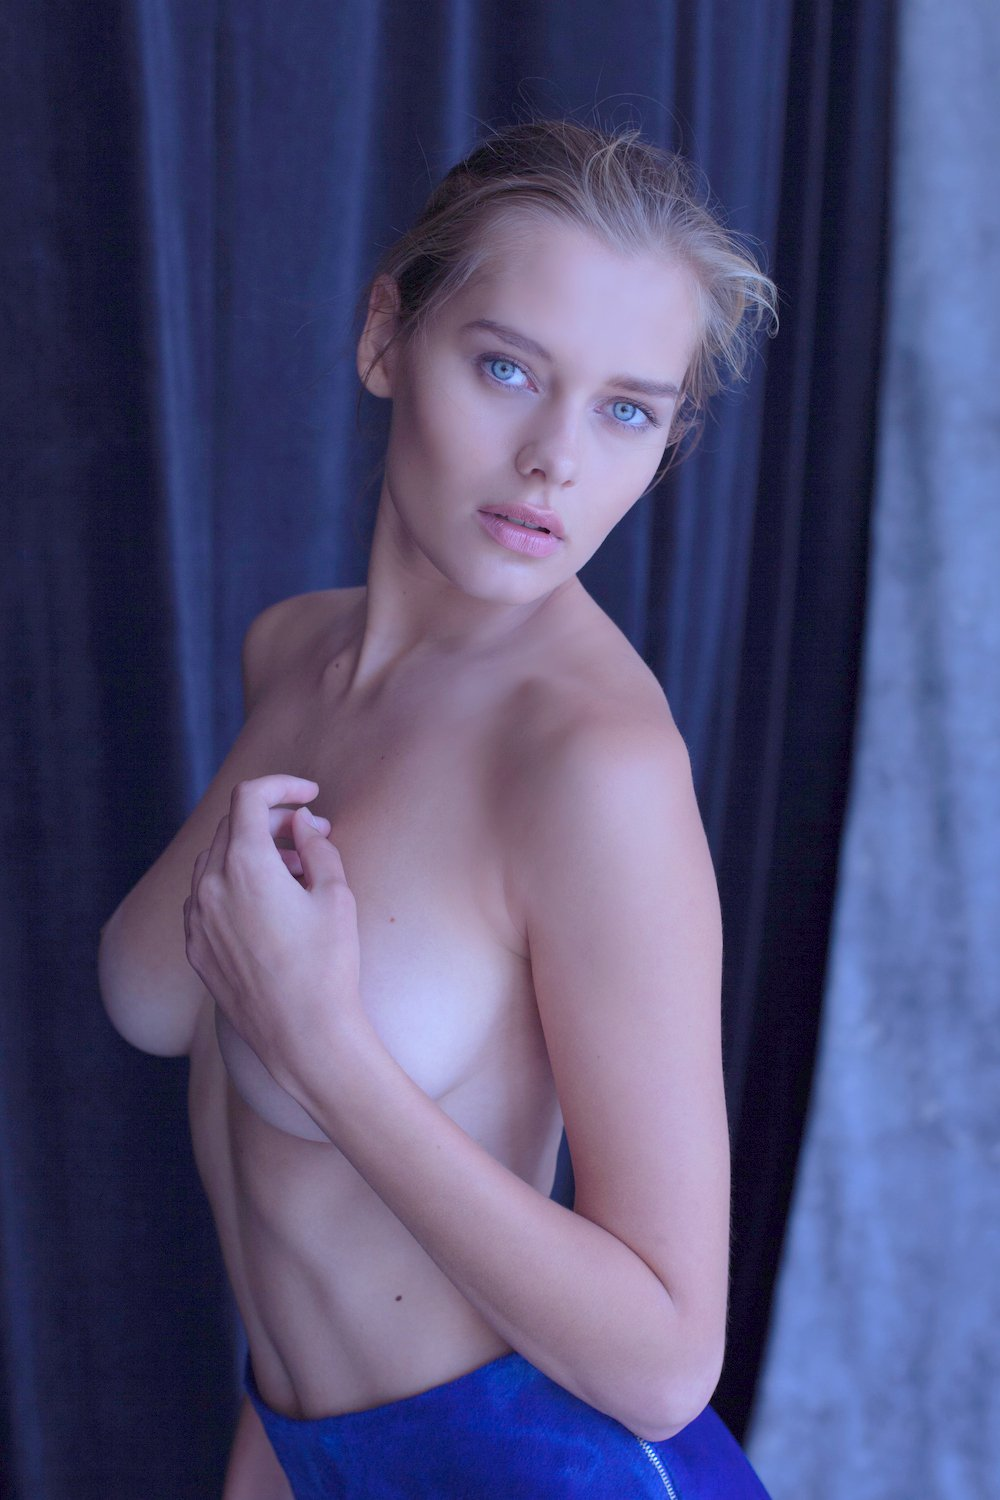 Amber oneal private,CelebGate Britney Spears Really Complete Nude Collection  Adult nude Sexy photos of Alyssa Arce. 2018-2019 celebrityes photos leaks!,Paula bulczynska bikini